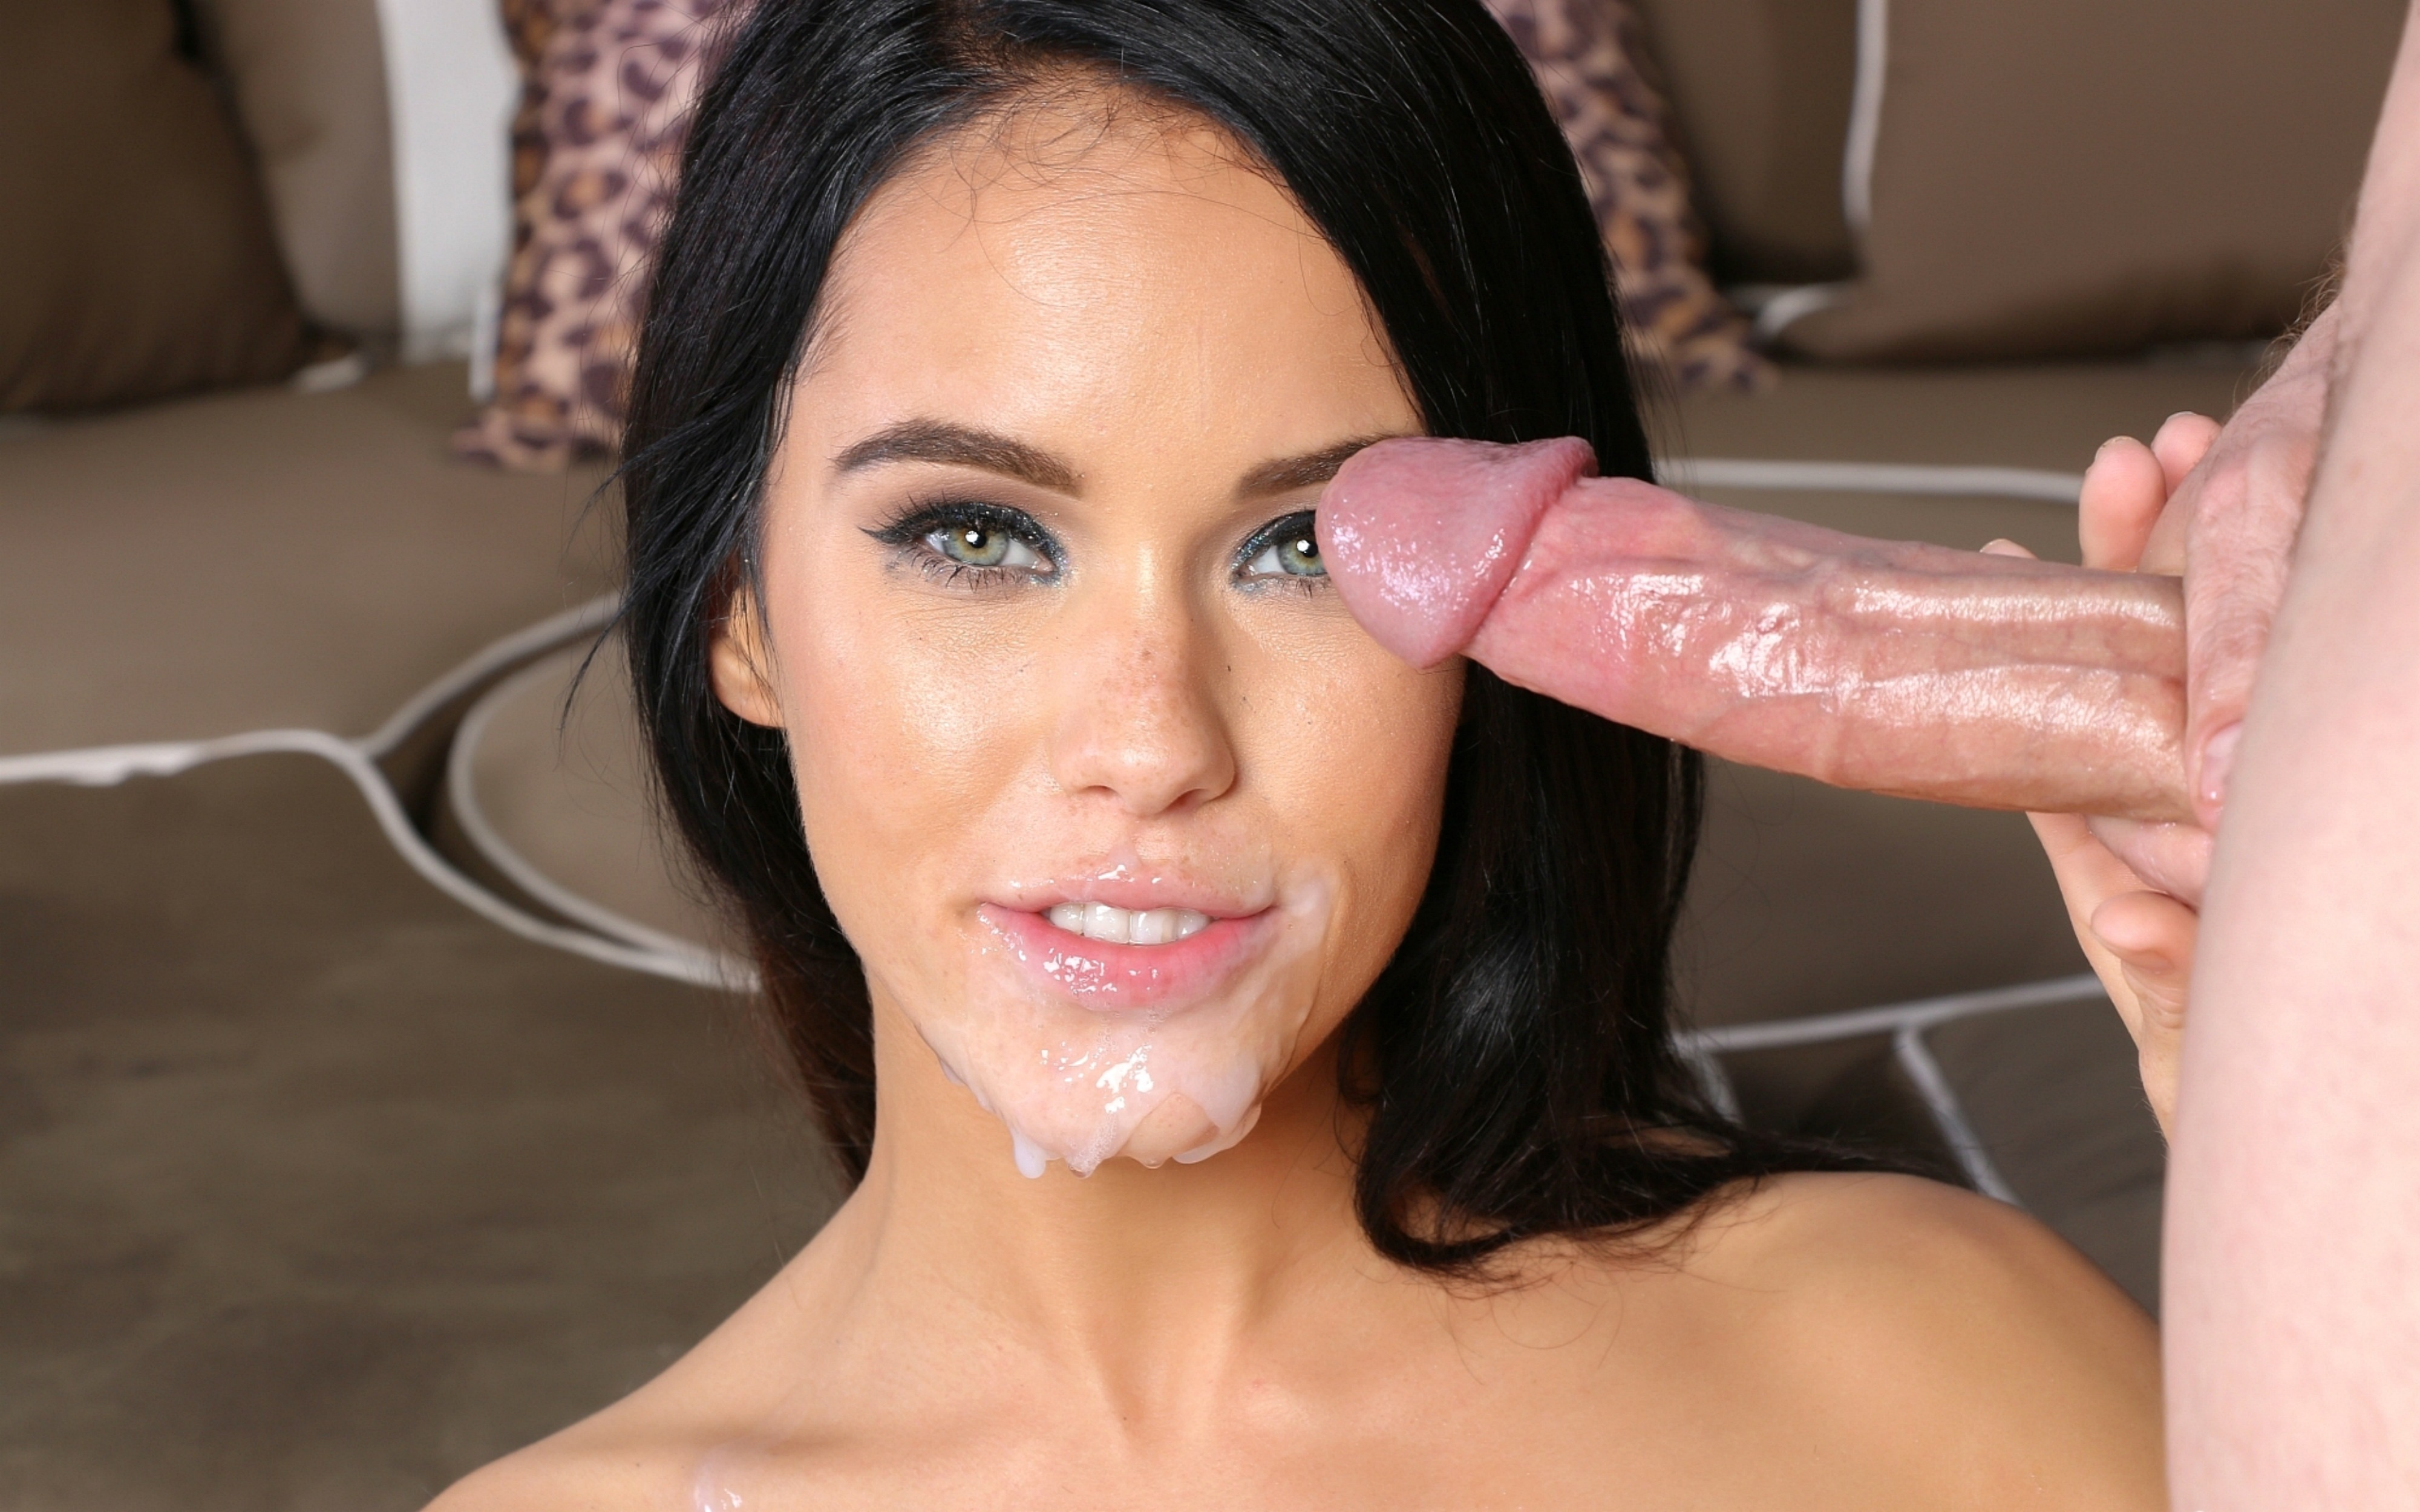 Megan rain fucked hard by her stepfather 6